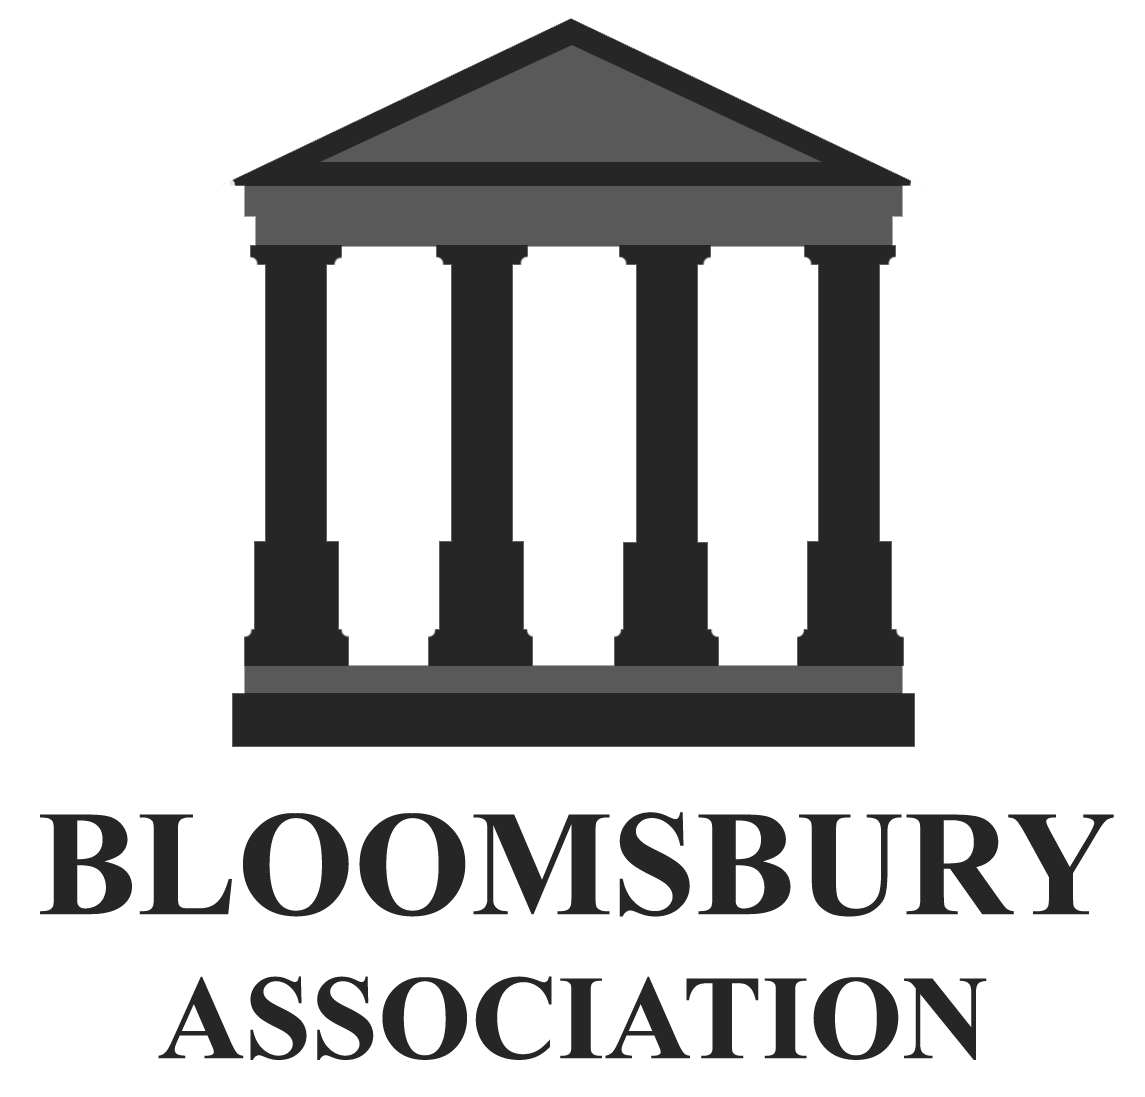 Bloomsbury Association